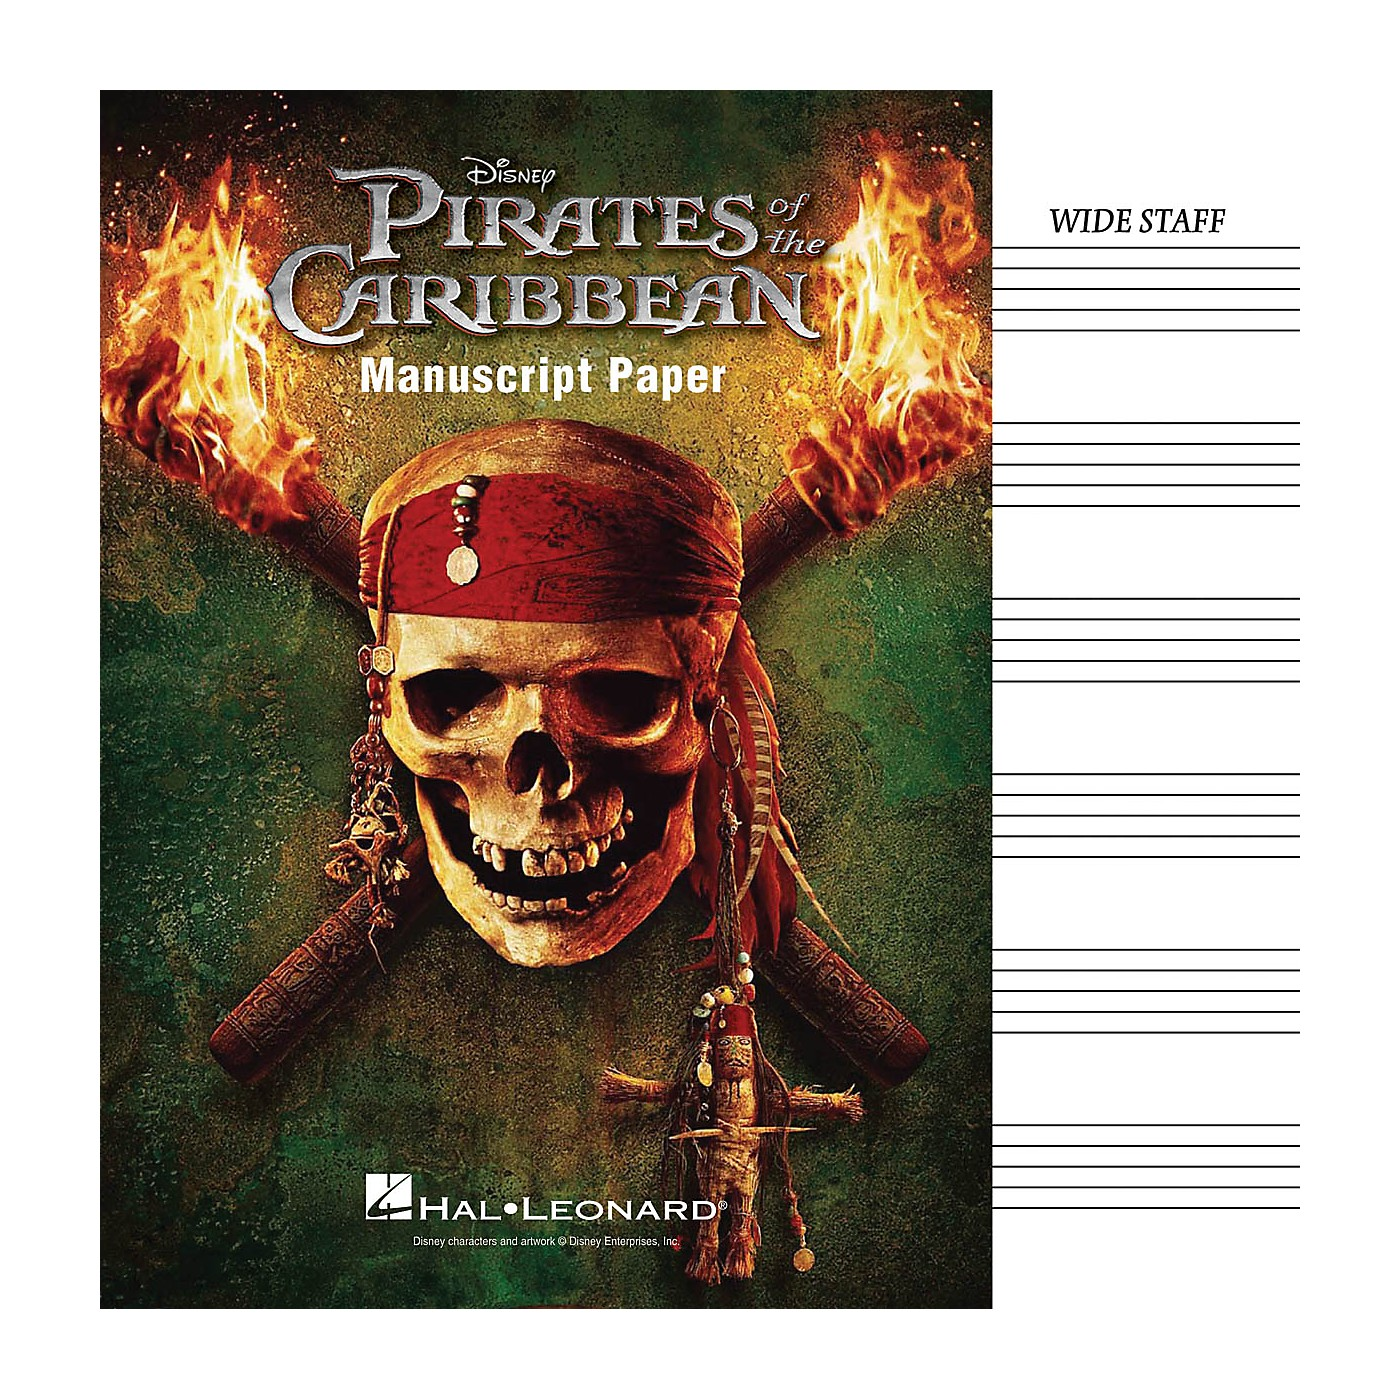 Hal Leonard Pirates Of The Caribbean Manuscript Paper thumbnail